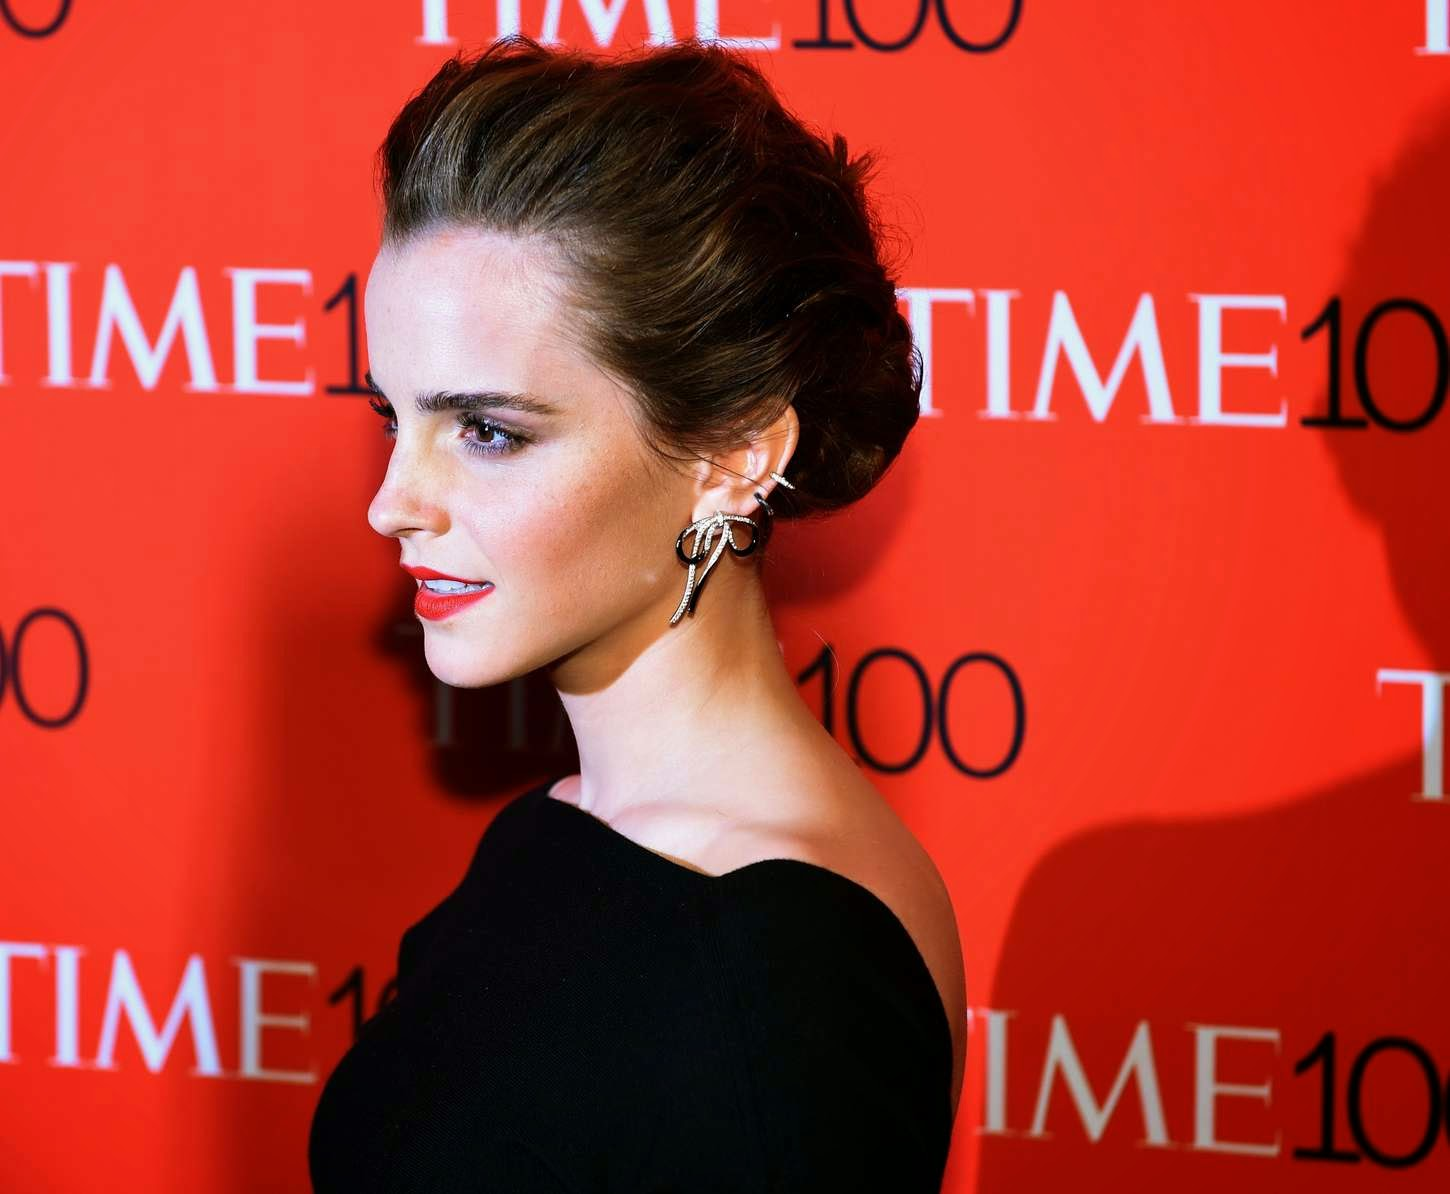 Emma Watson is edgy in Christian Dior at the 2015 Time 100 Most Influential People in the World Gala